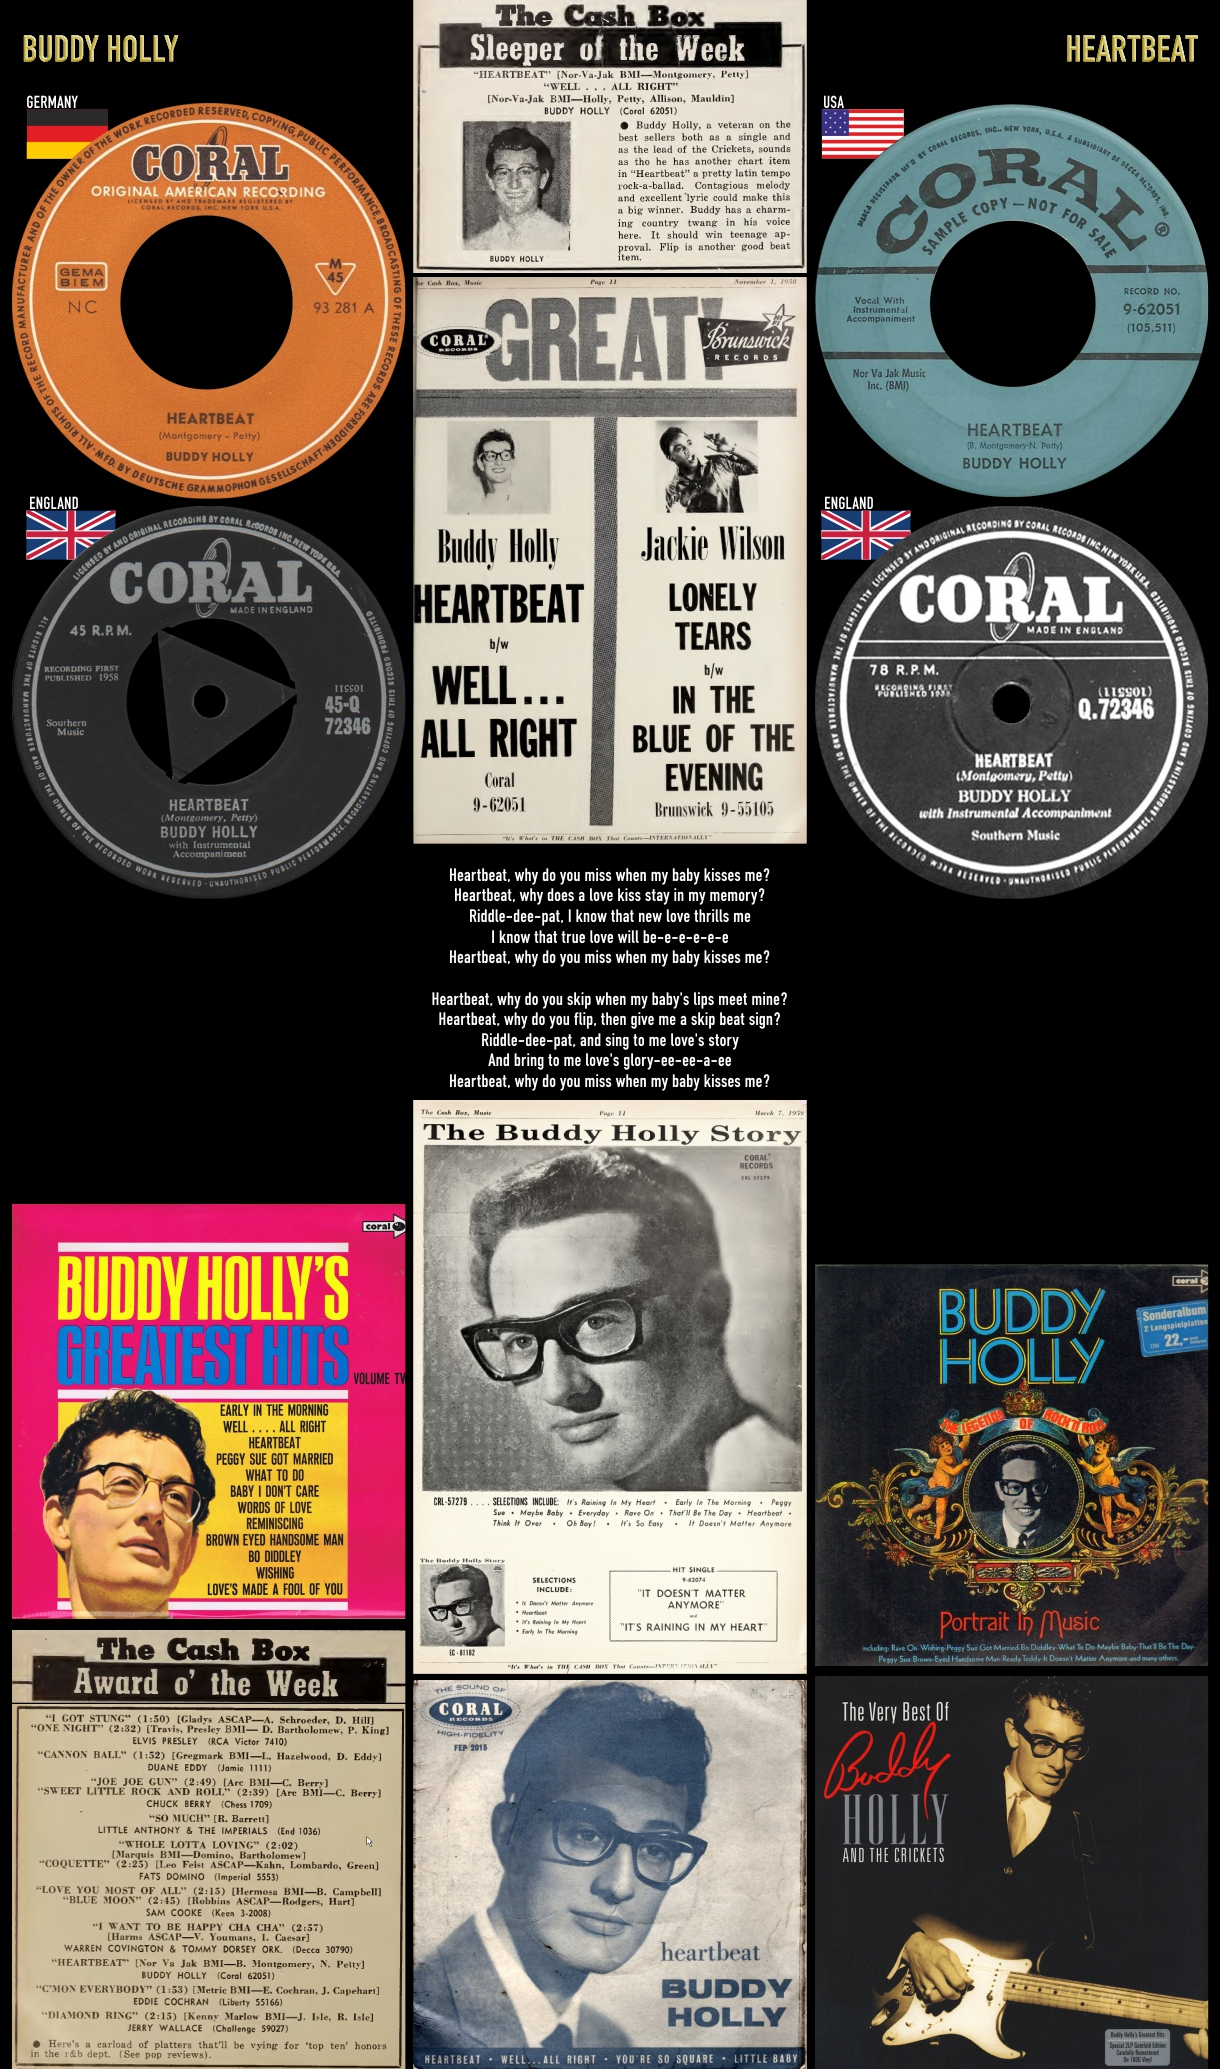 581227_Buddy Holly_Heartbeat_01